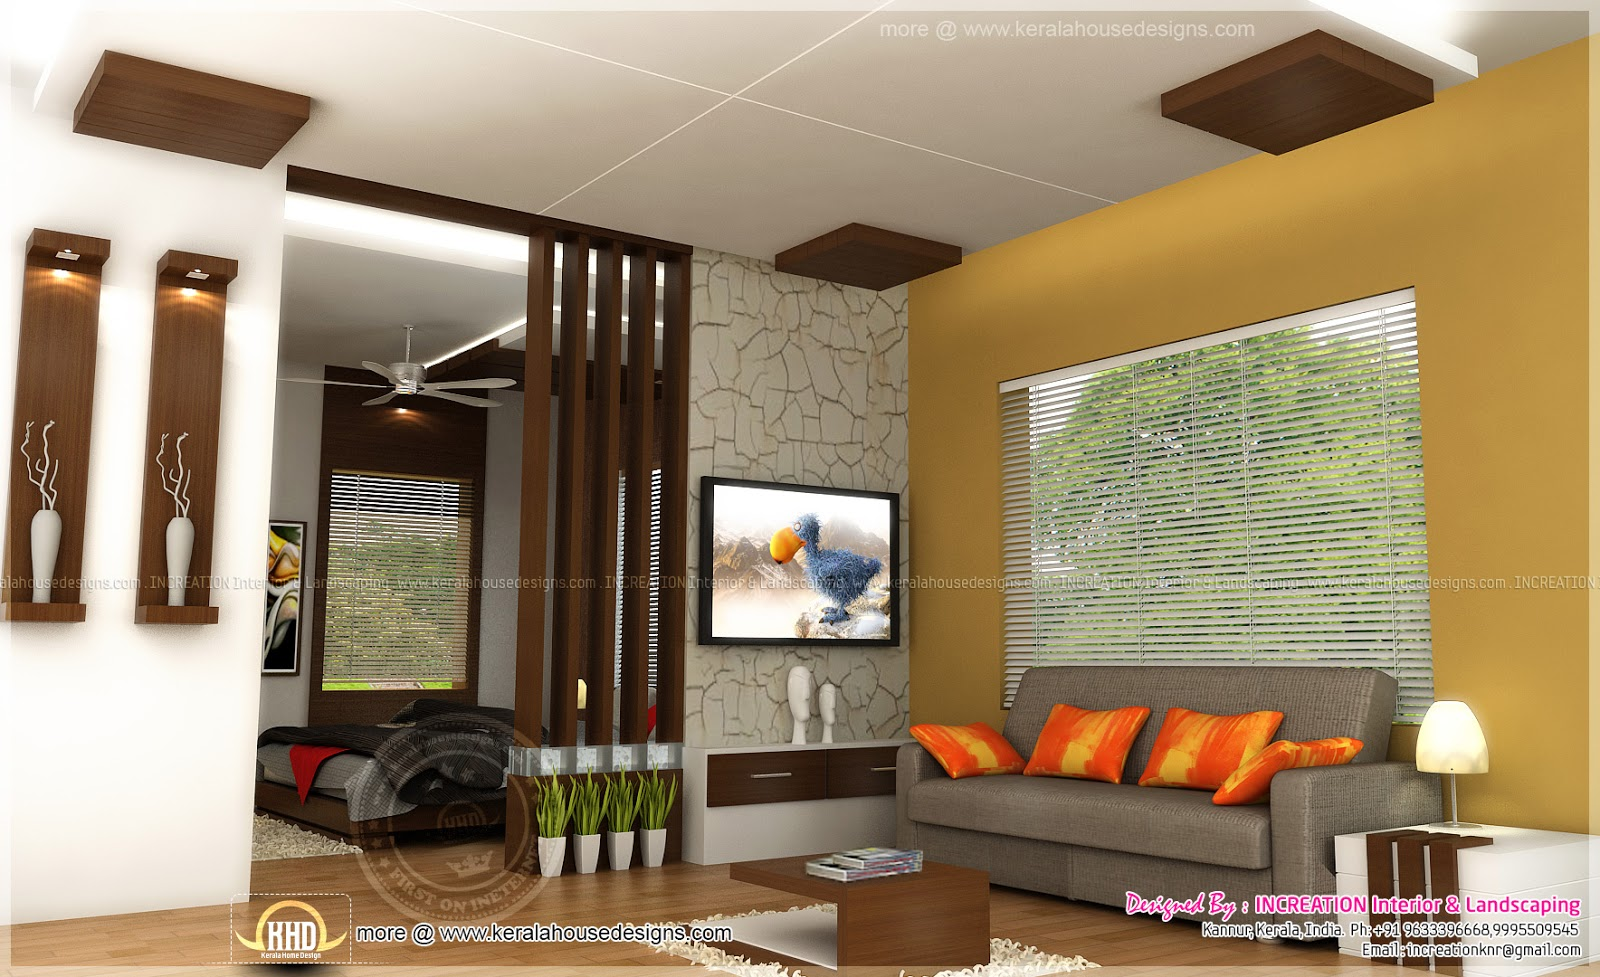 Interior designs from kannur kerala home kerala plans - Home designs interior ...